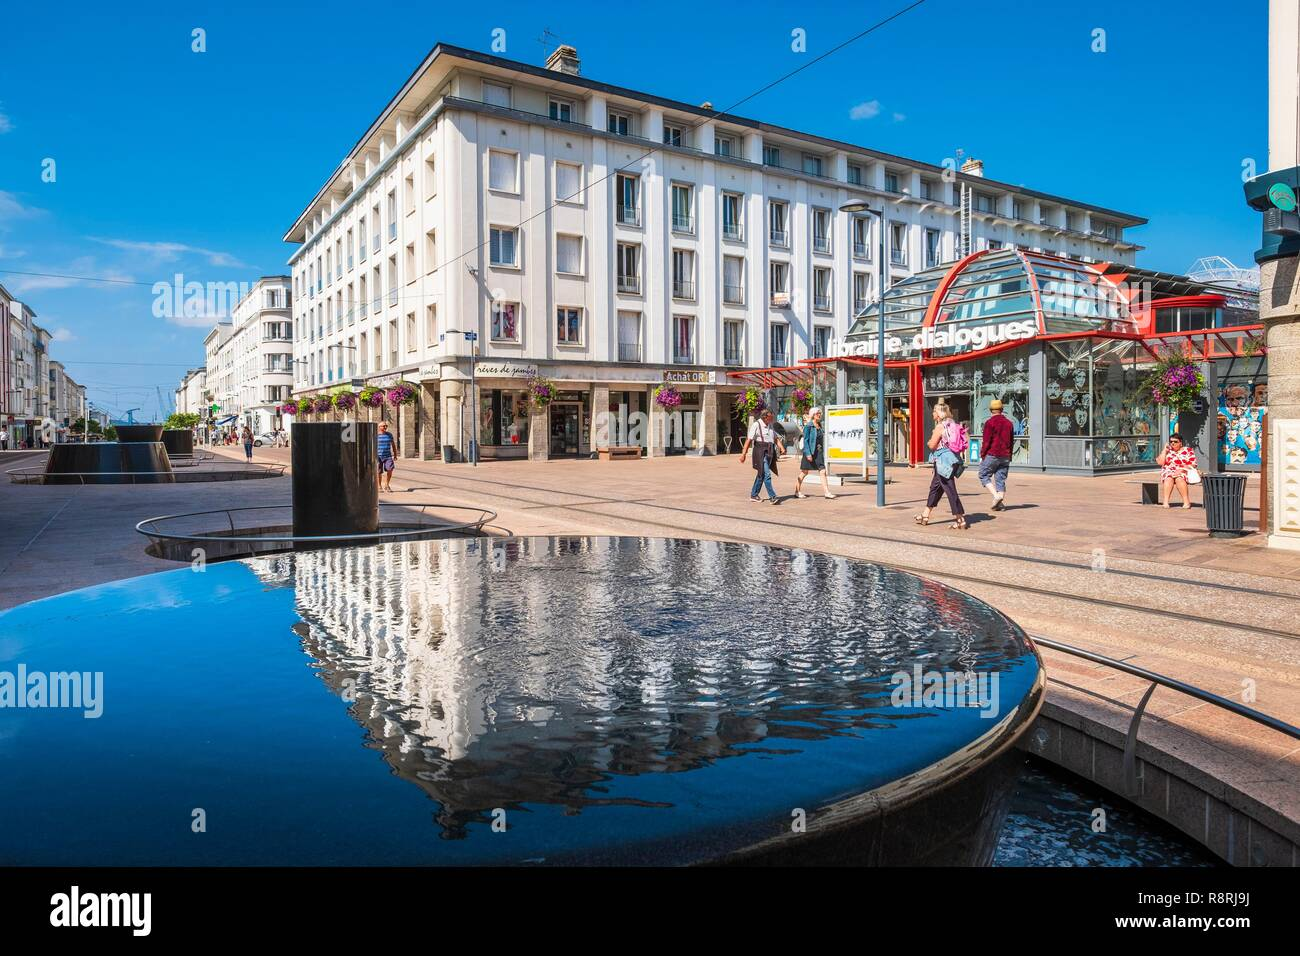 France, Finistere, Brest, Siam street, Dialogues library - Stock Image